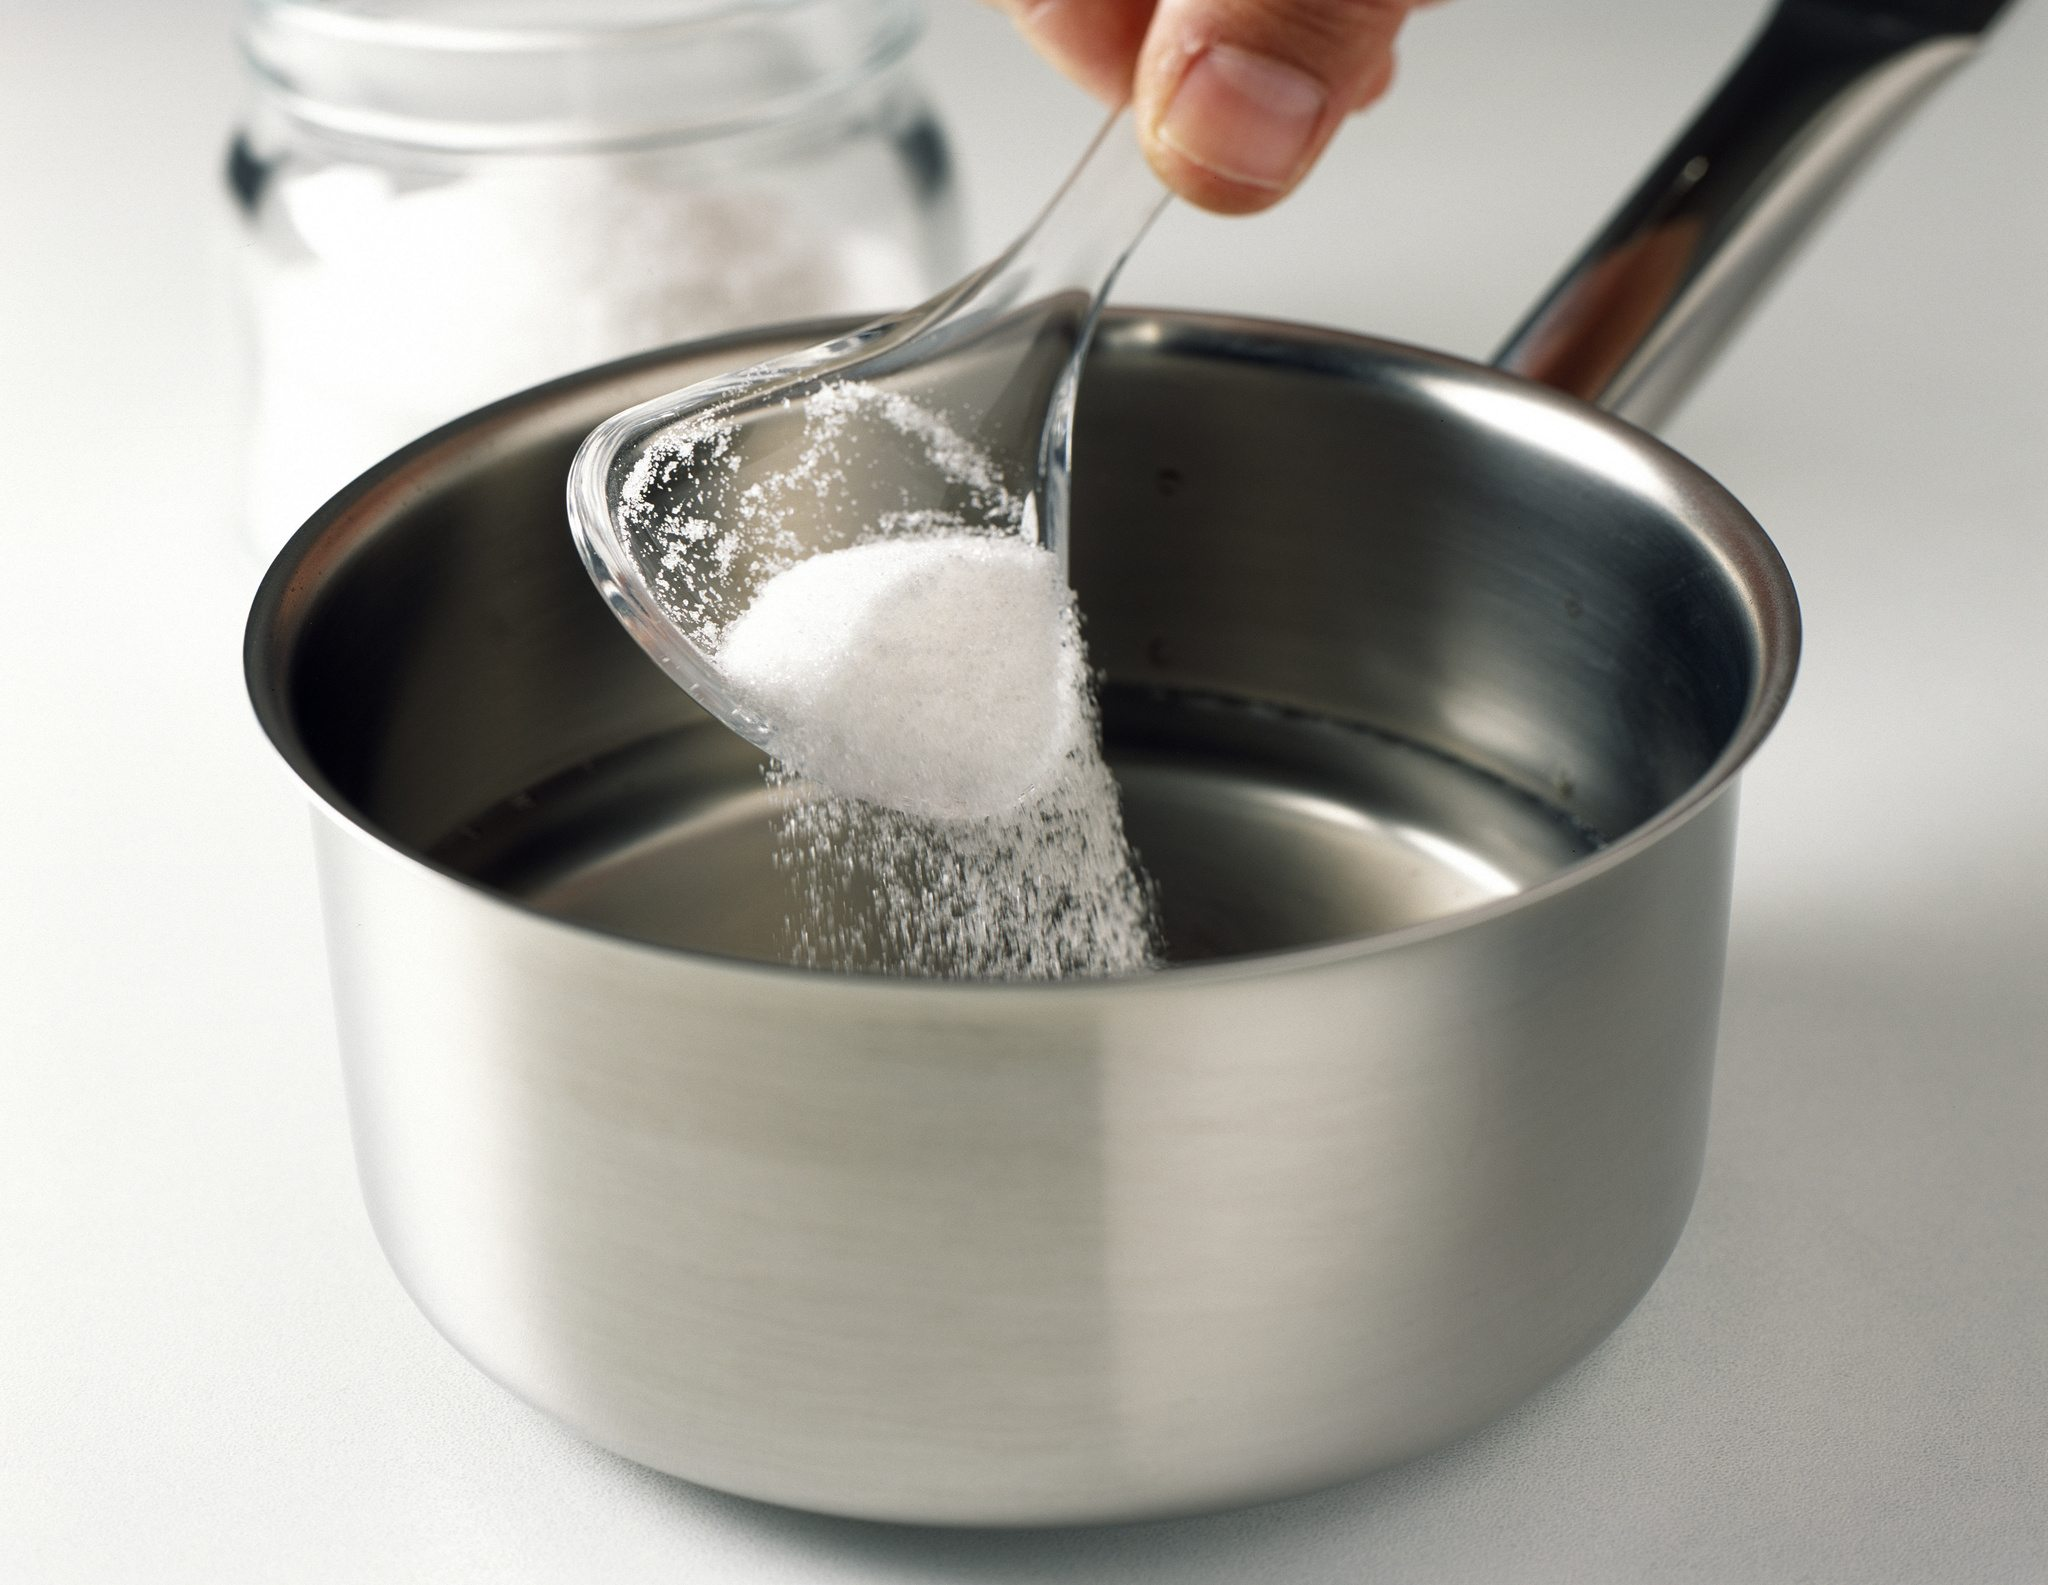 Sugar being poured into pot on stove